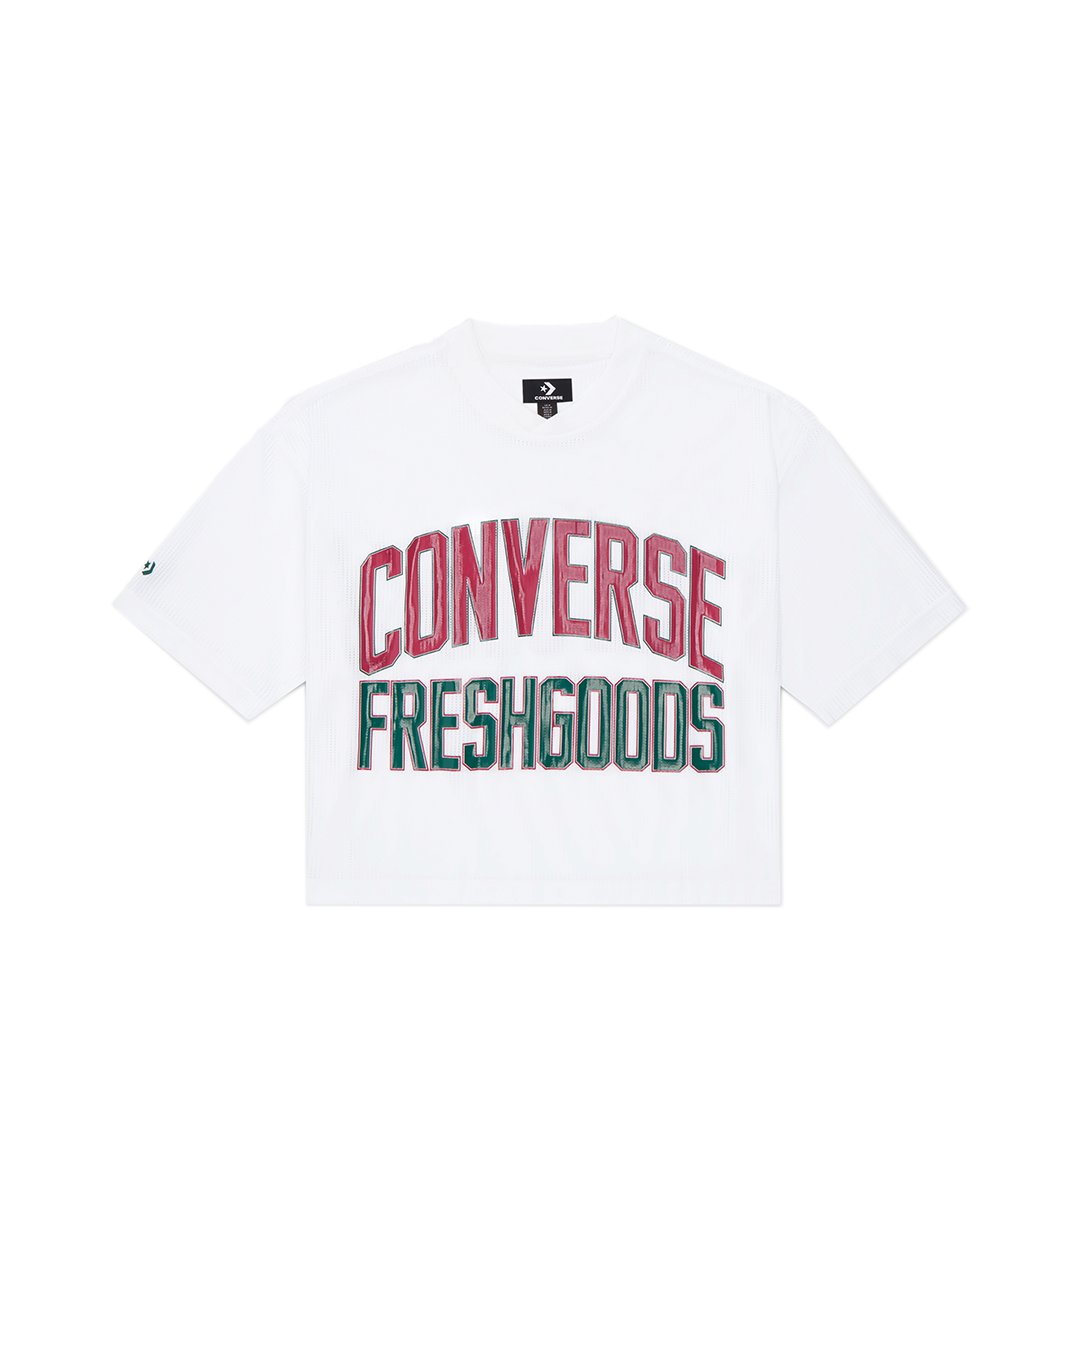 Joe Freshgoods Football Top White